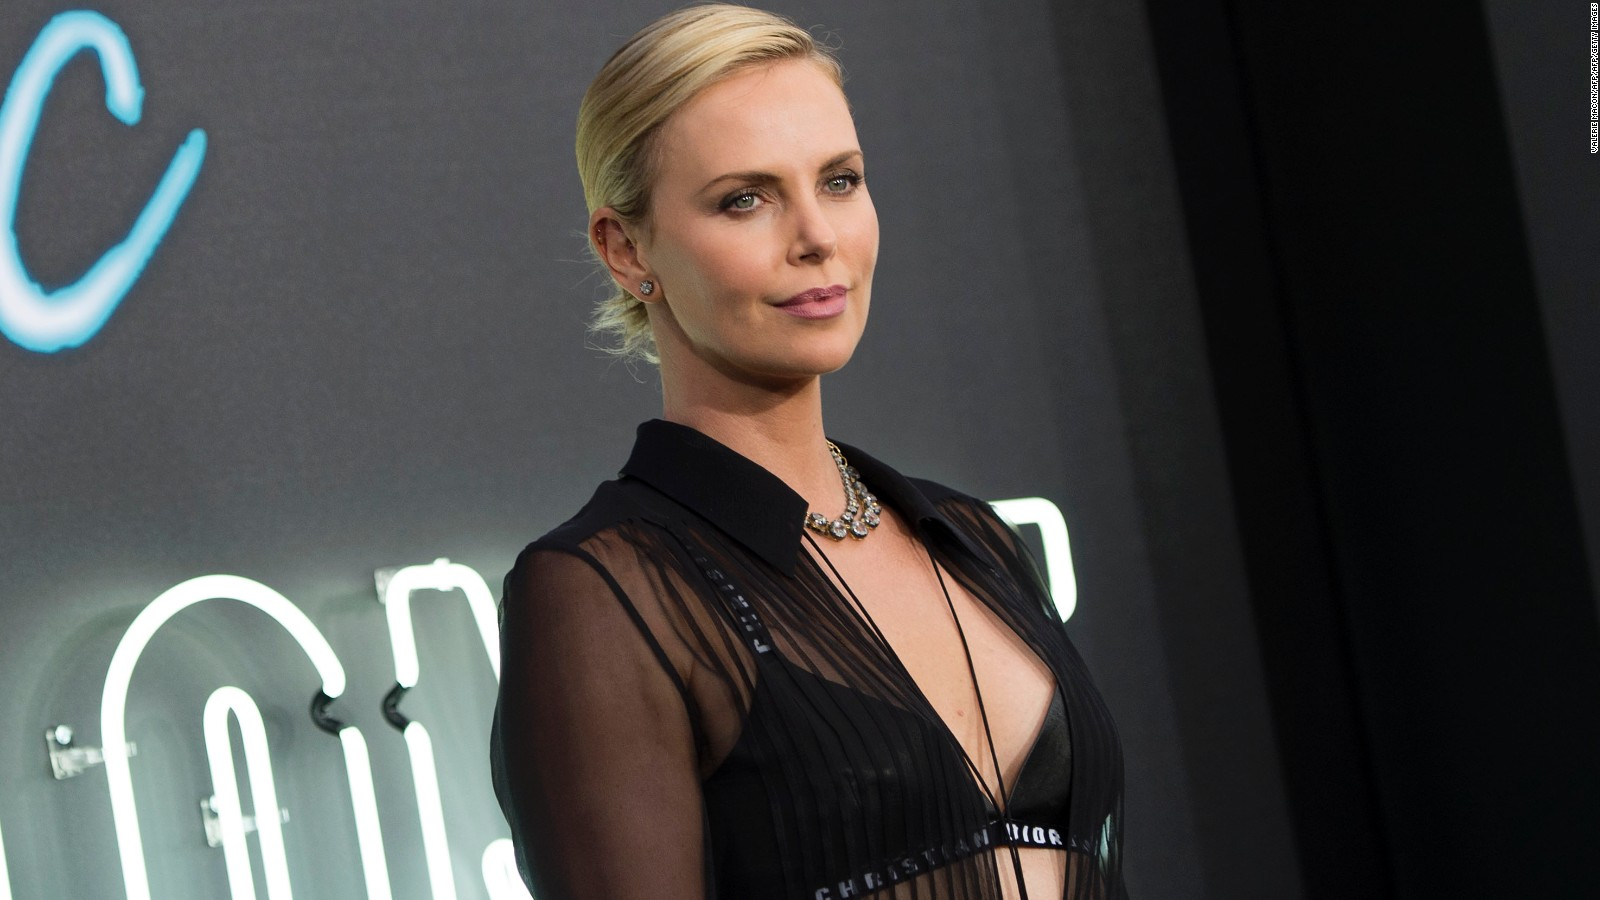 amazing charlize theron cute style mobile free background desktop hd images